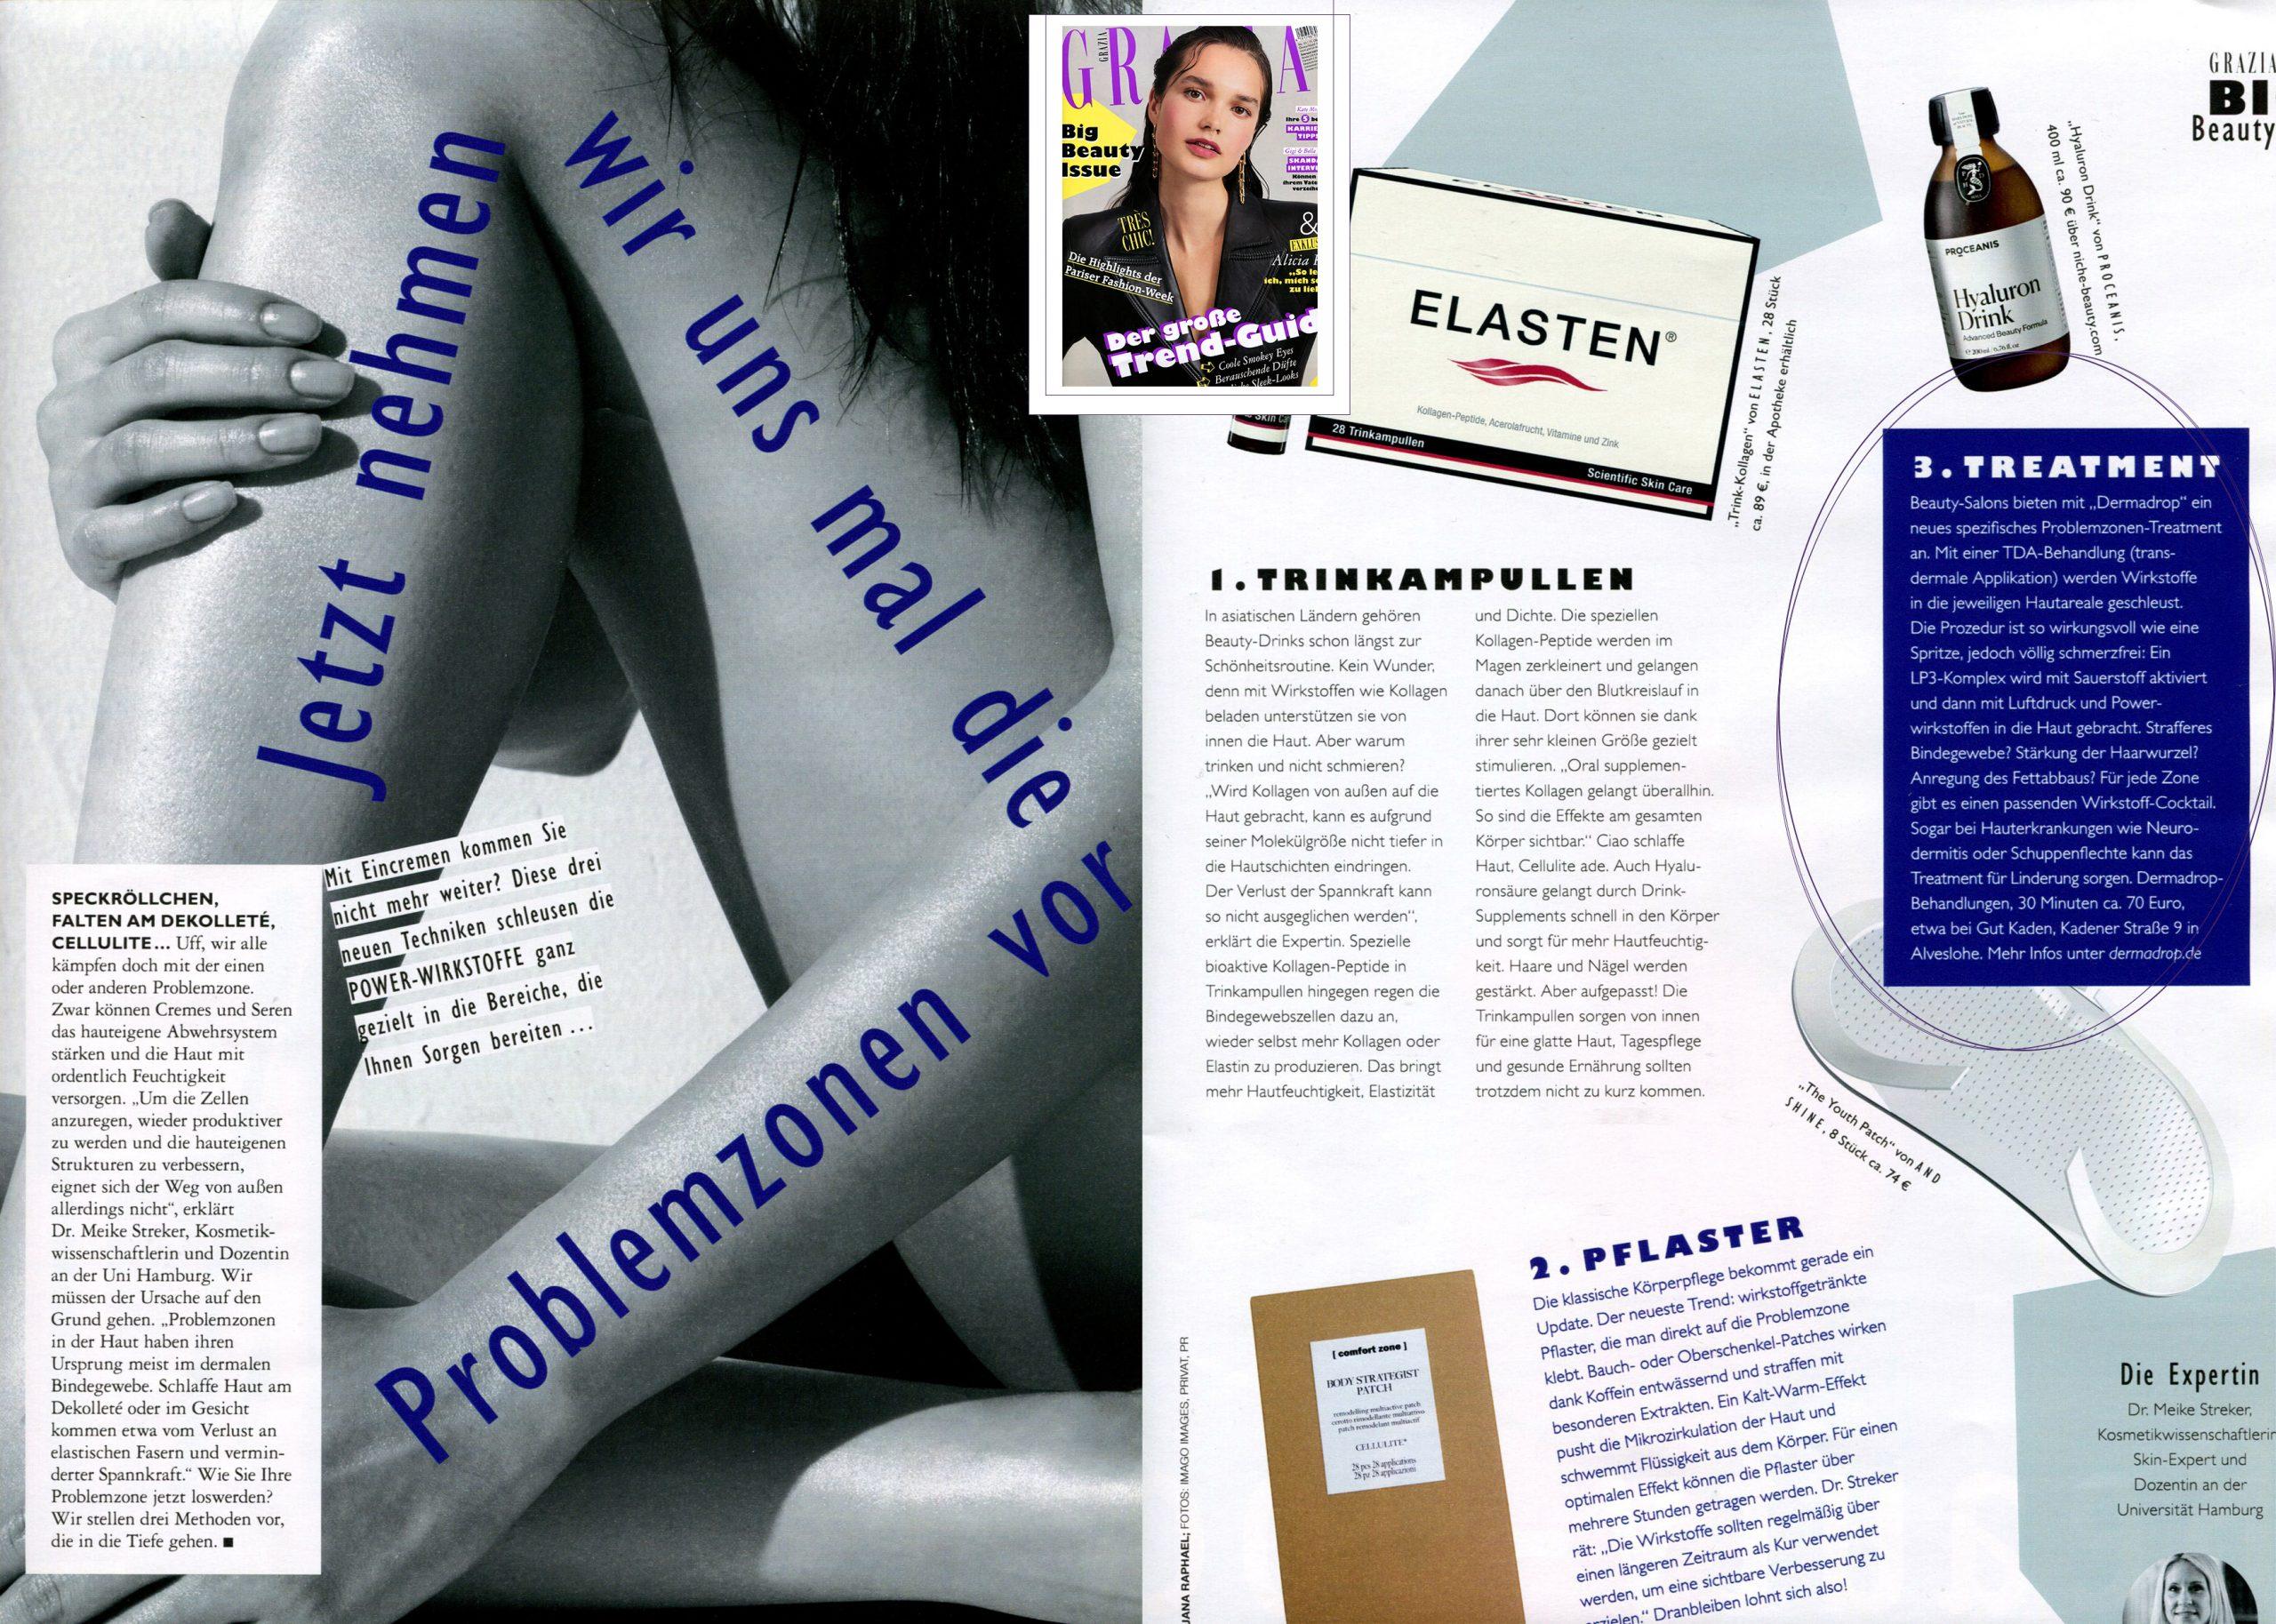 GRAZIA Publication DERMADROP